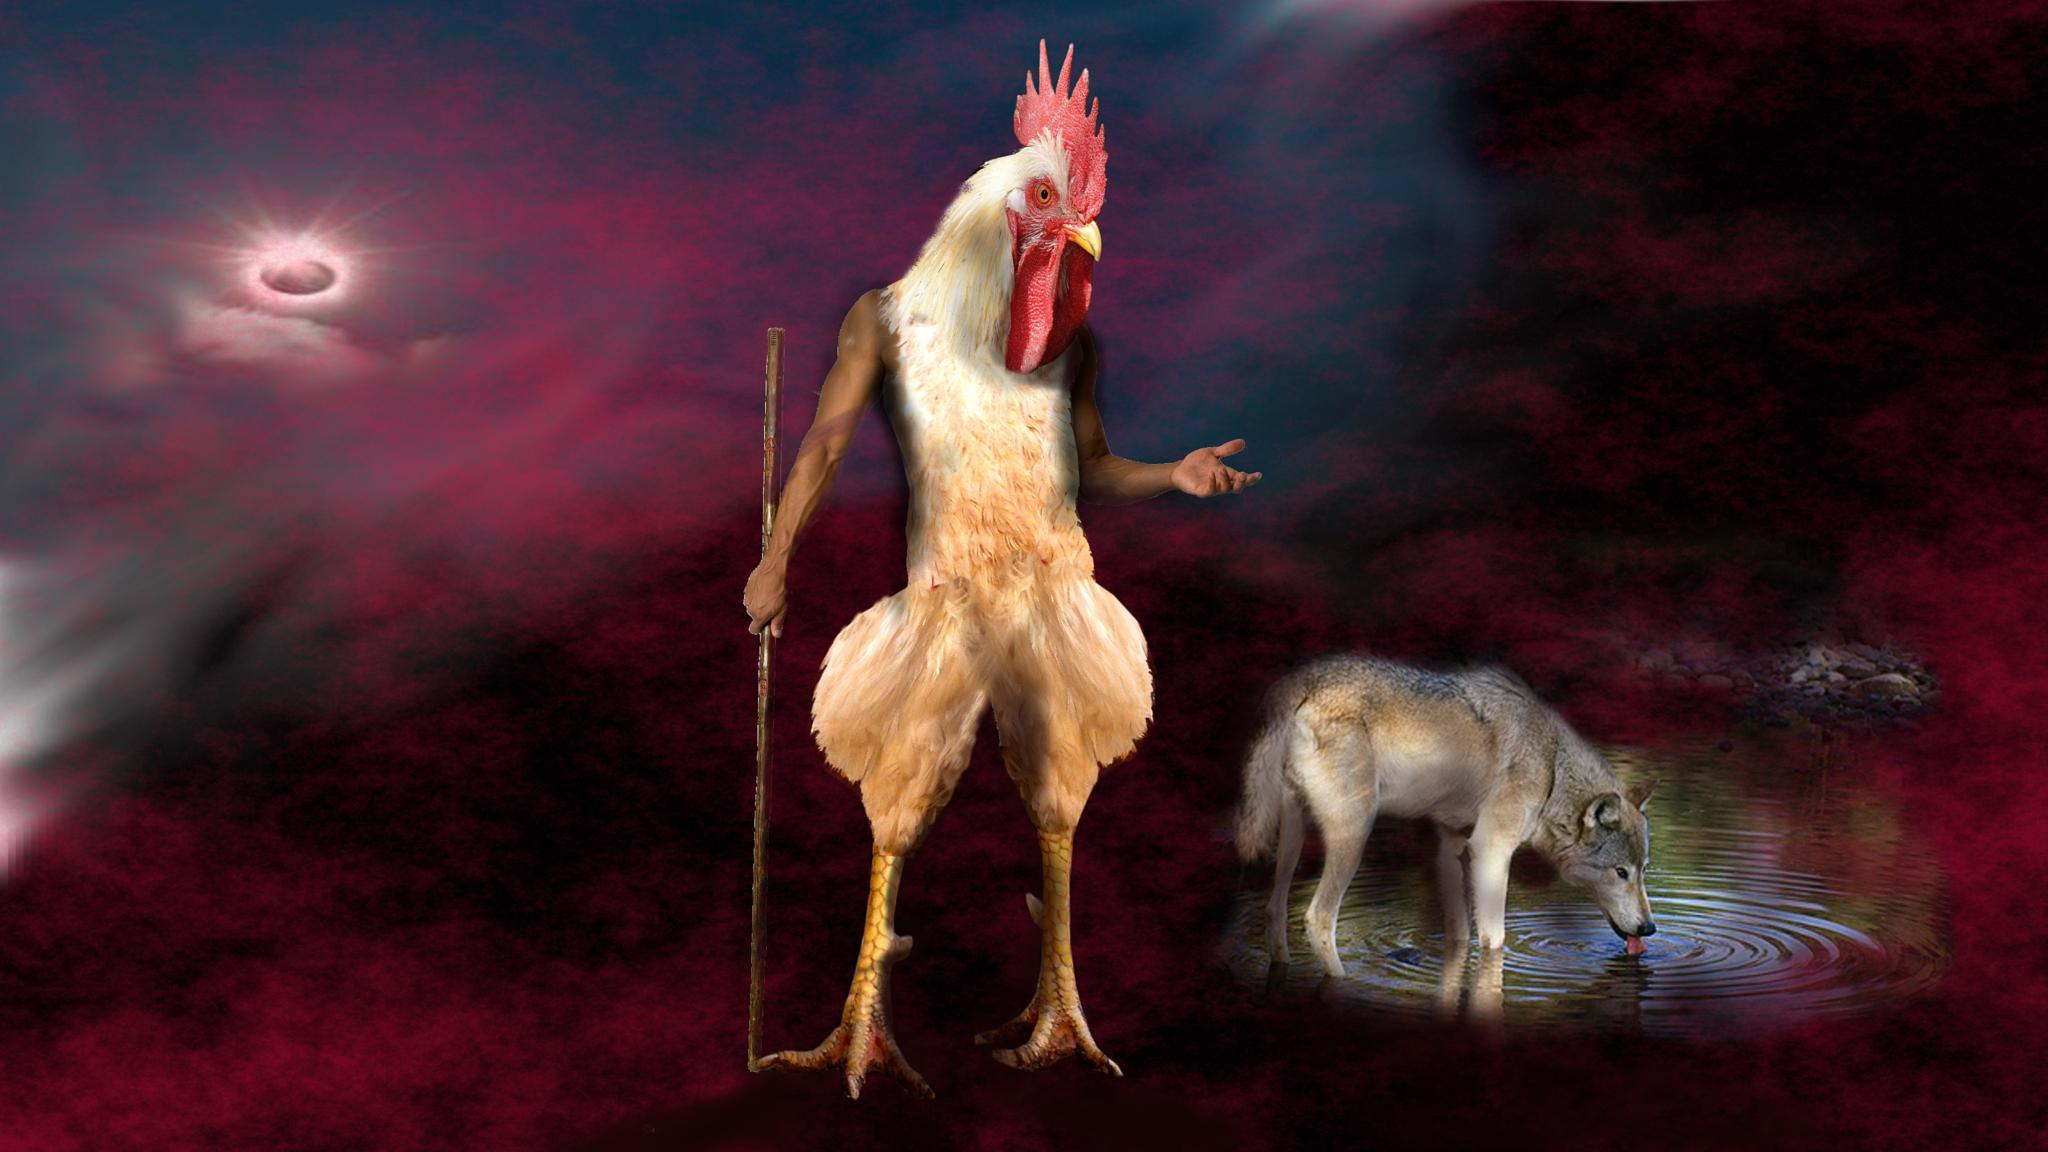 lupo o gallina - wolf or chicken by franco.zamarco